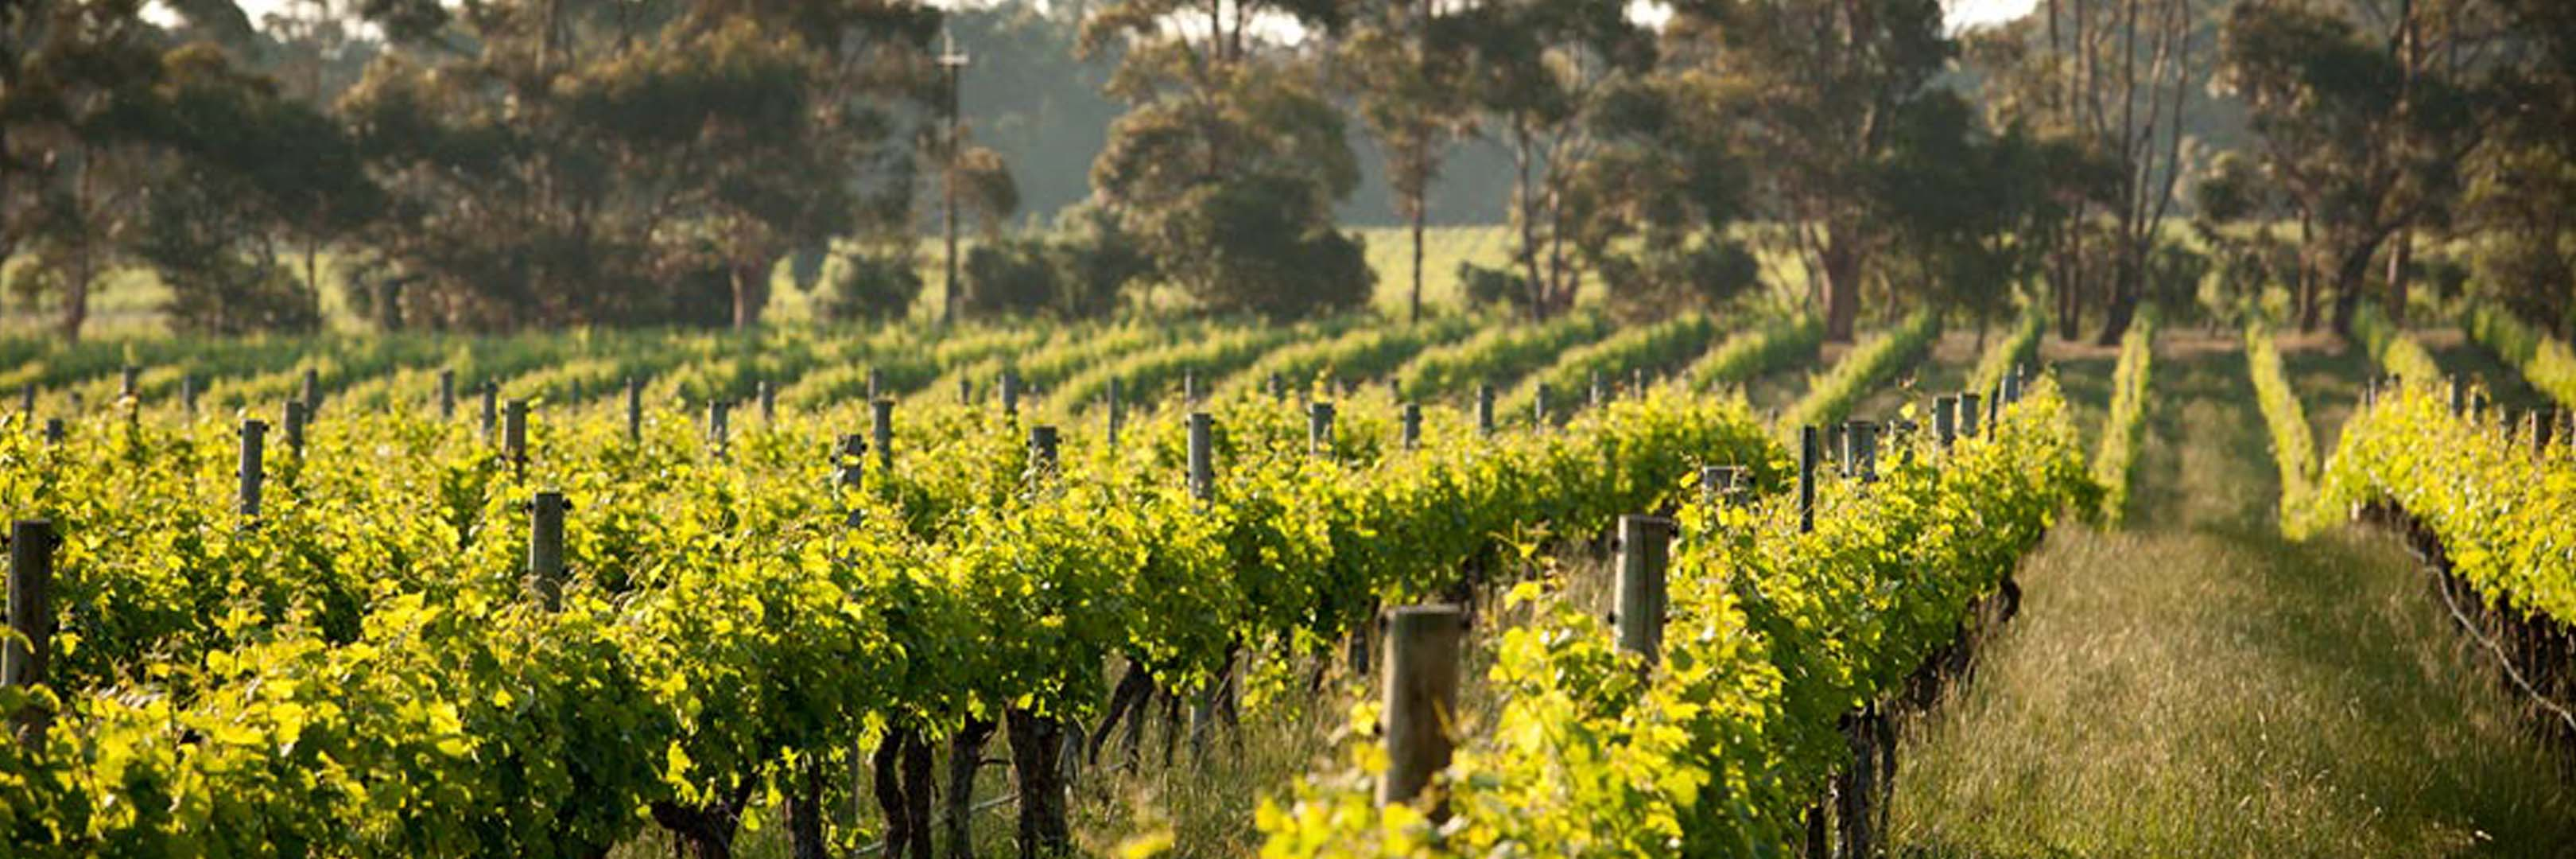 Cape Mentelle - Cape Mentelle Australian wines available on Winery Philippines